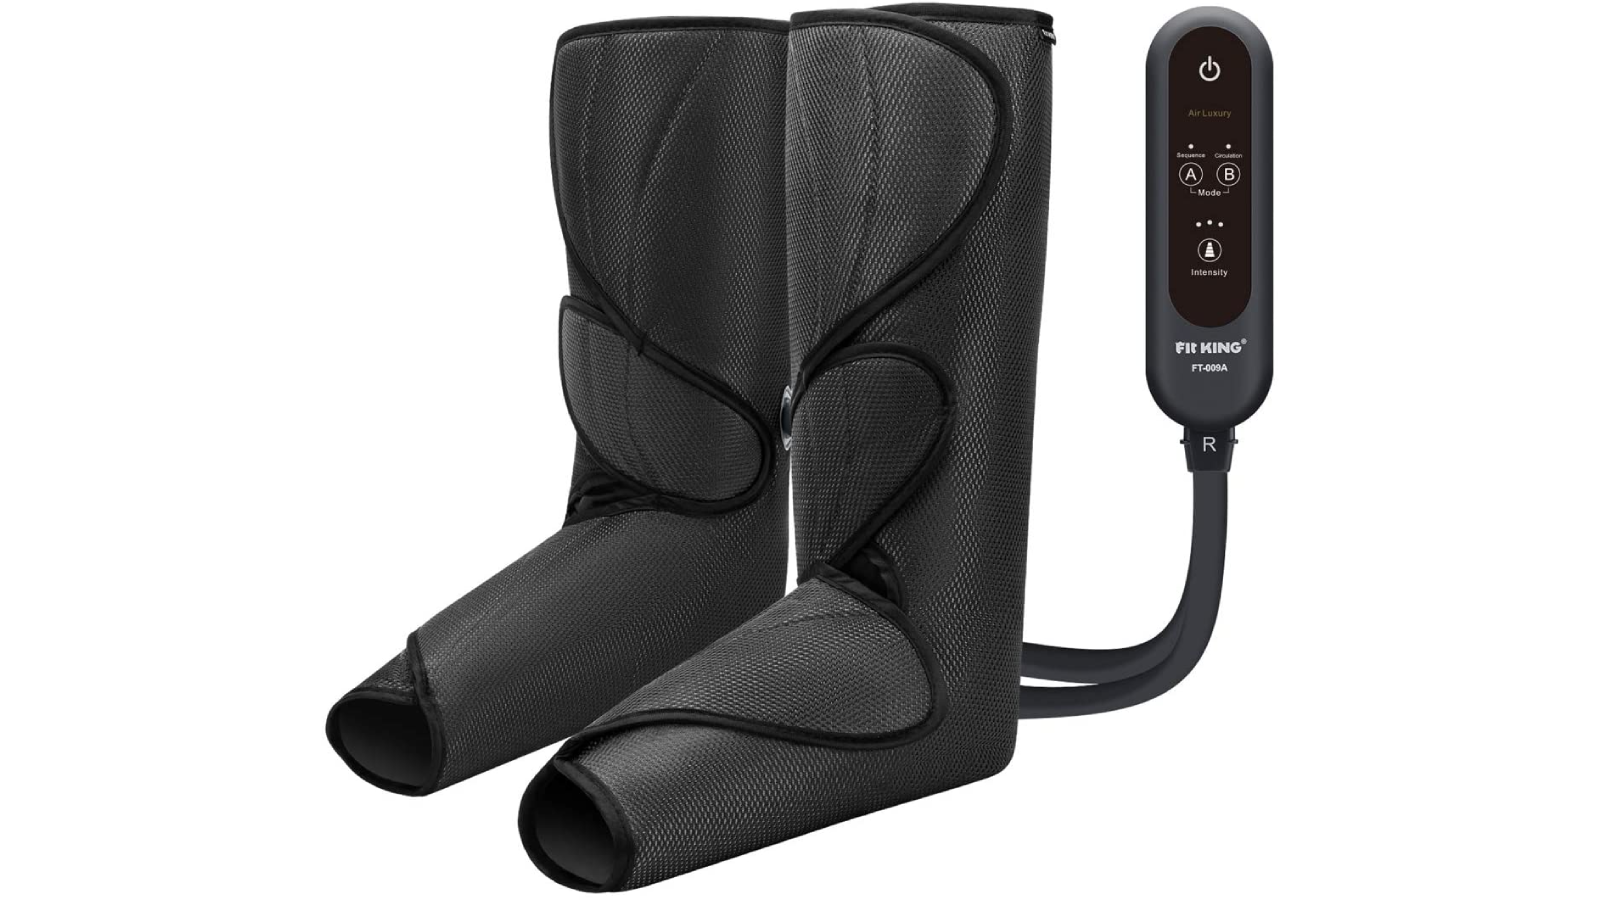 Black boot-like calf wraps with controller.